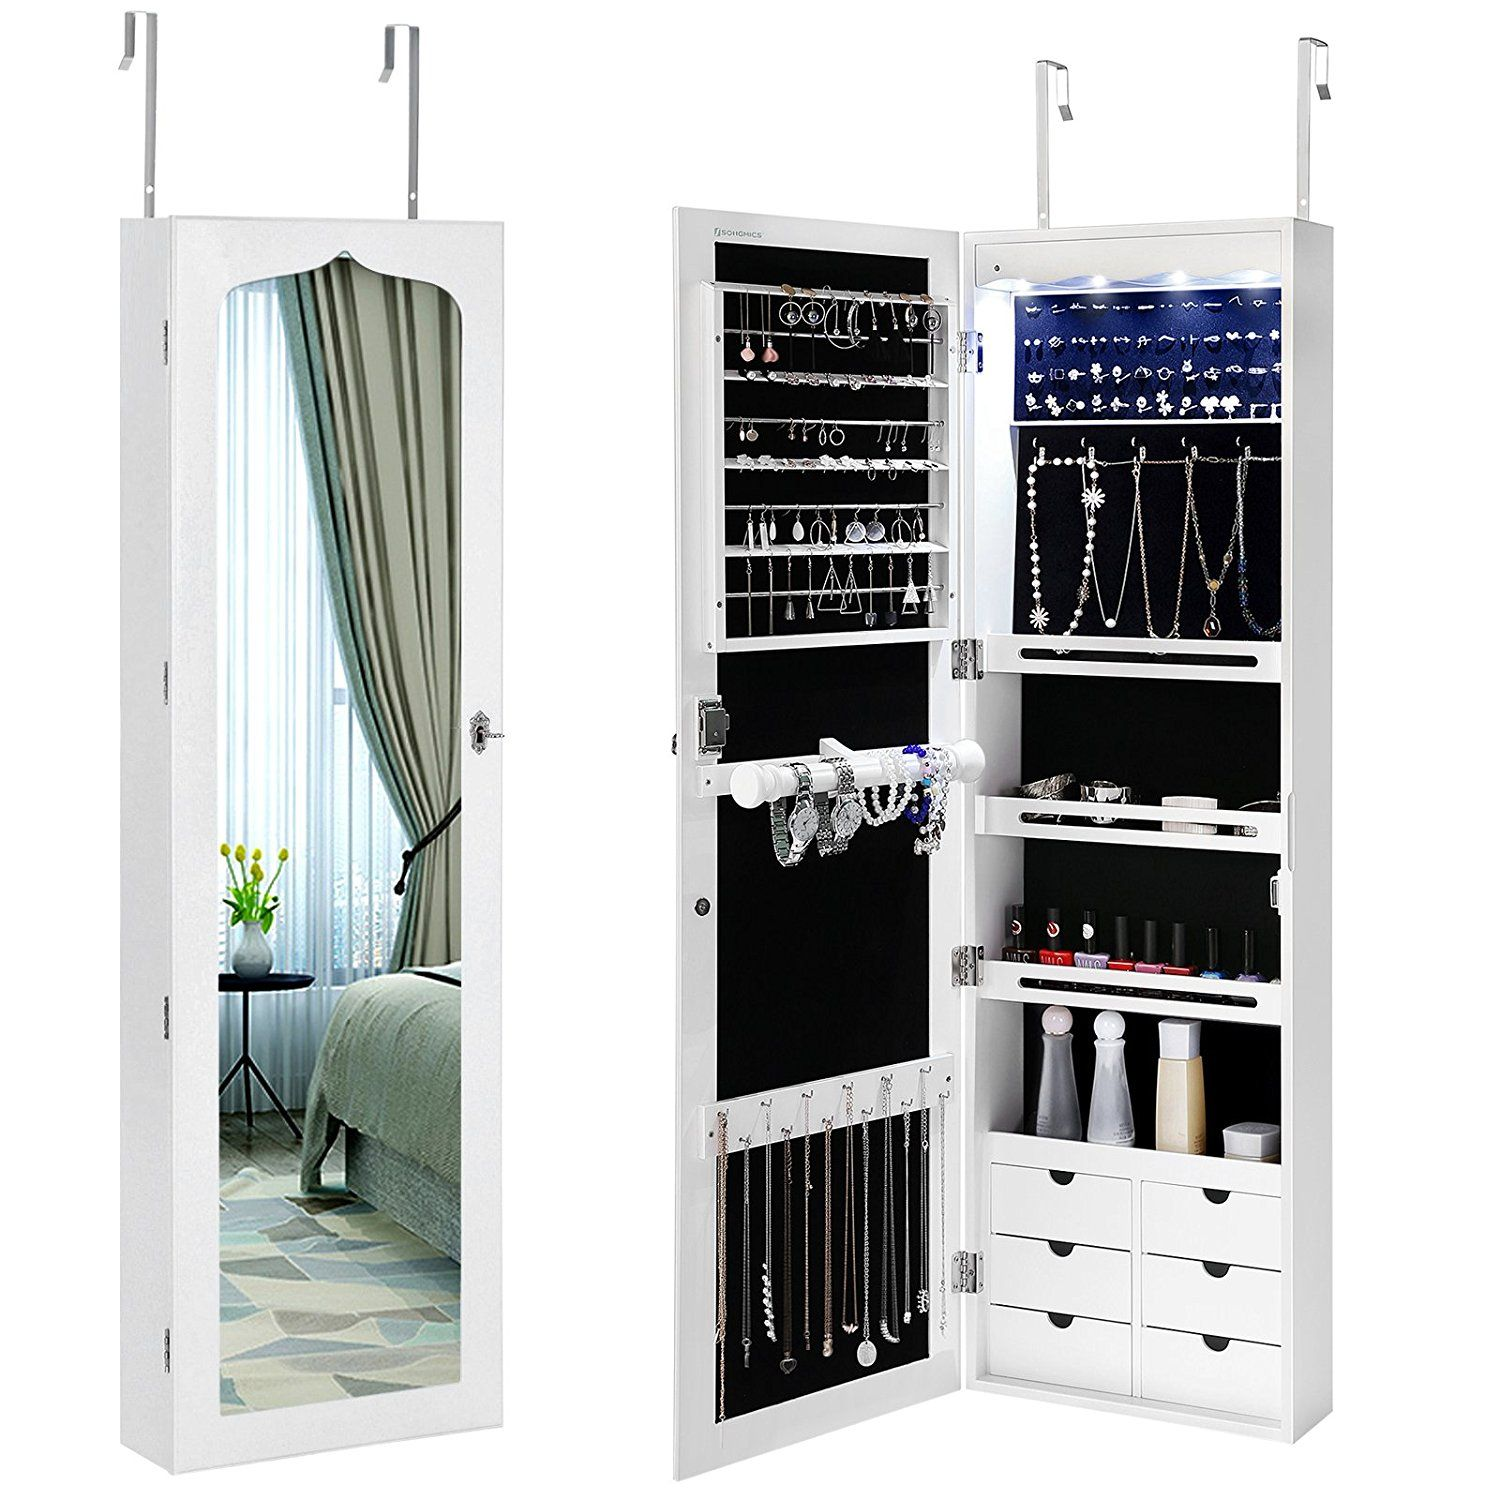 Amazoncom SONGMICS LED Jewelry Cabinet Armoire 6 Drawers Lockable